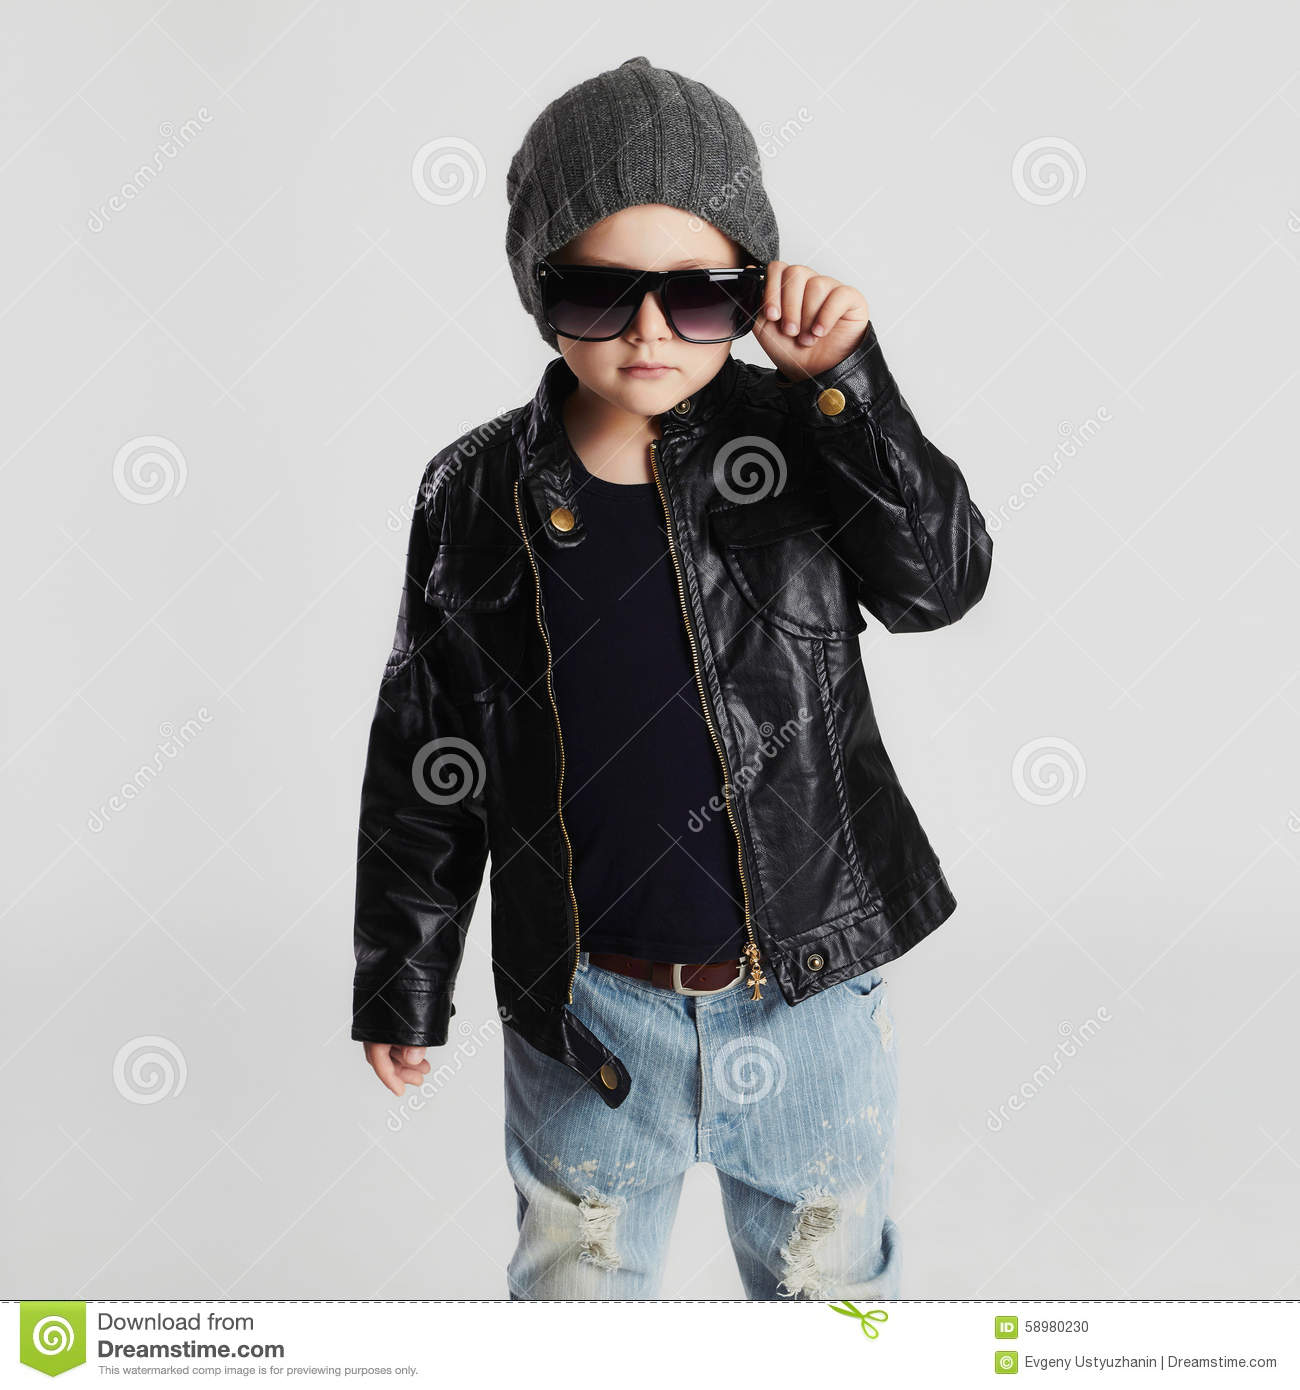 f2e0d64a1d145 Funny child in hat.fashionable little boy in sunglasses.stylish kid in  leather